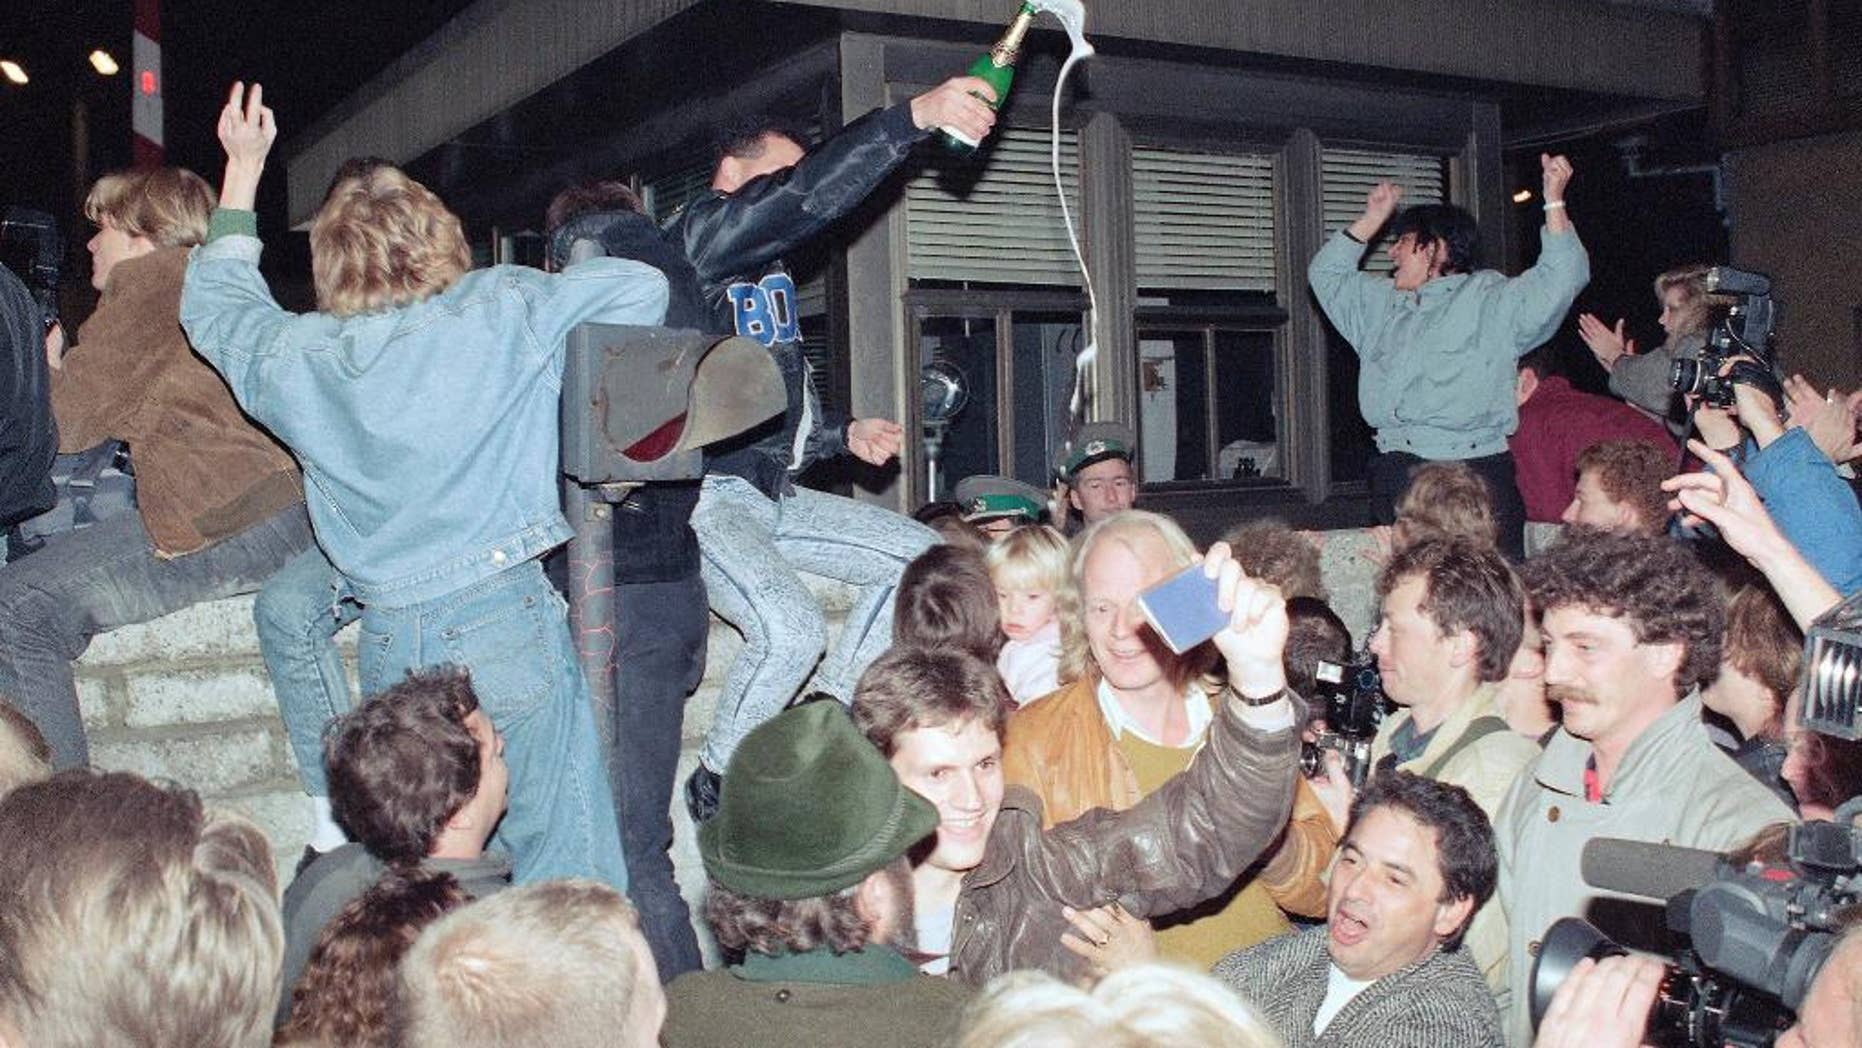 NOV. 10, 1989 - FILE PHOTO - East and West Berliners celebrating in front of a control station on East Berlin territory, during the opening of the borders to the West following the announcement by the East German government that the border to the West would be open. ADVANCE FOR RELEASE SATURDAY, NOVEMBER 8, 2014, AT 12:01 A.M